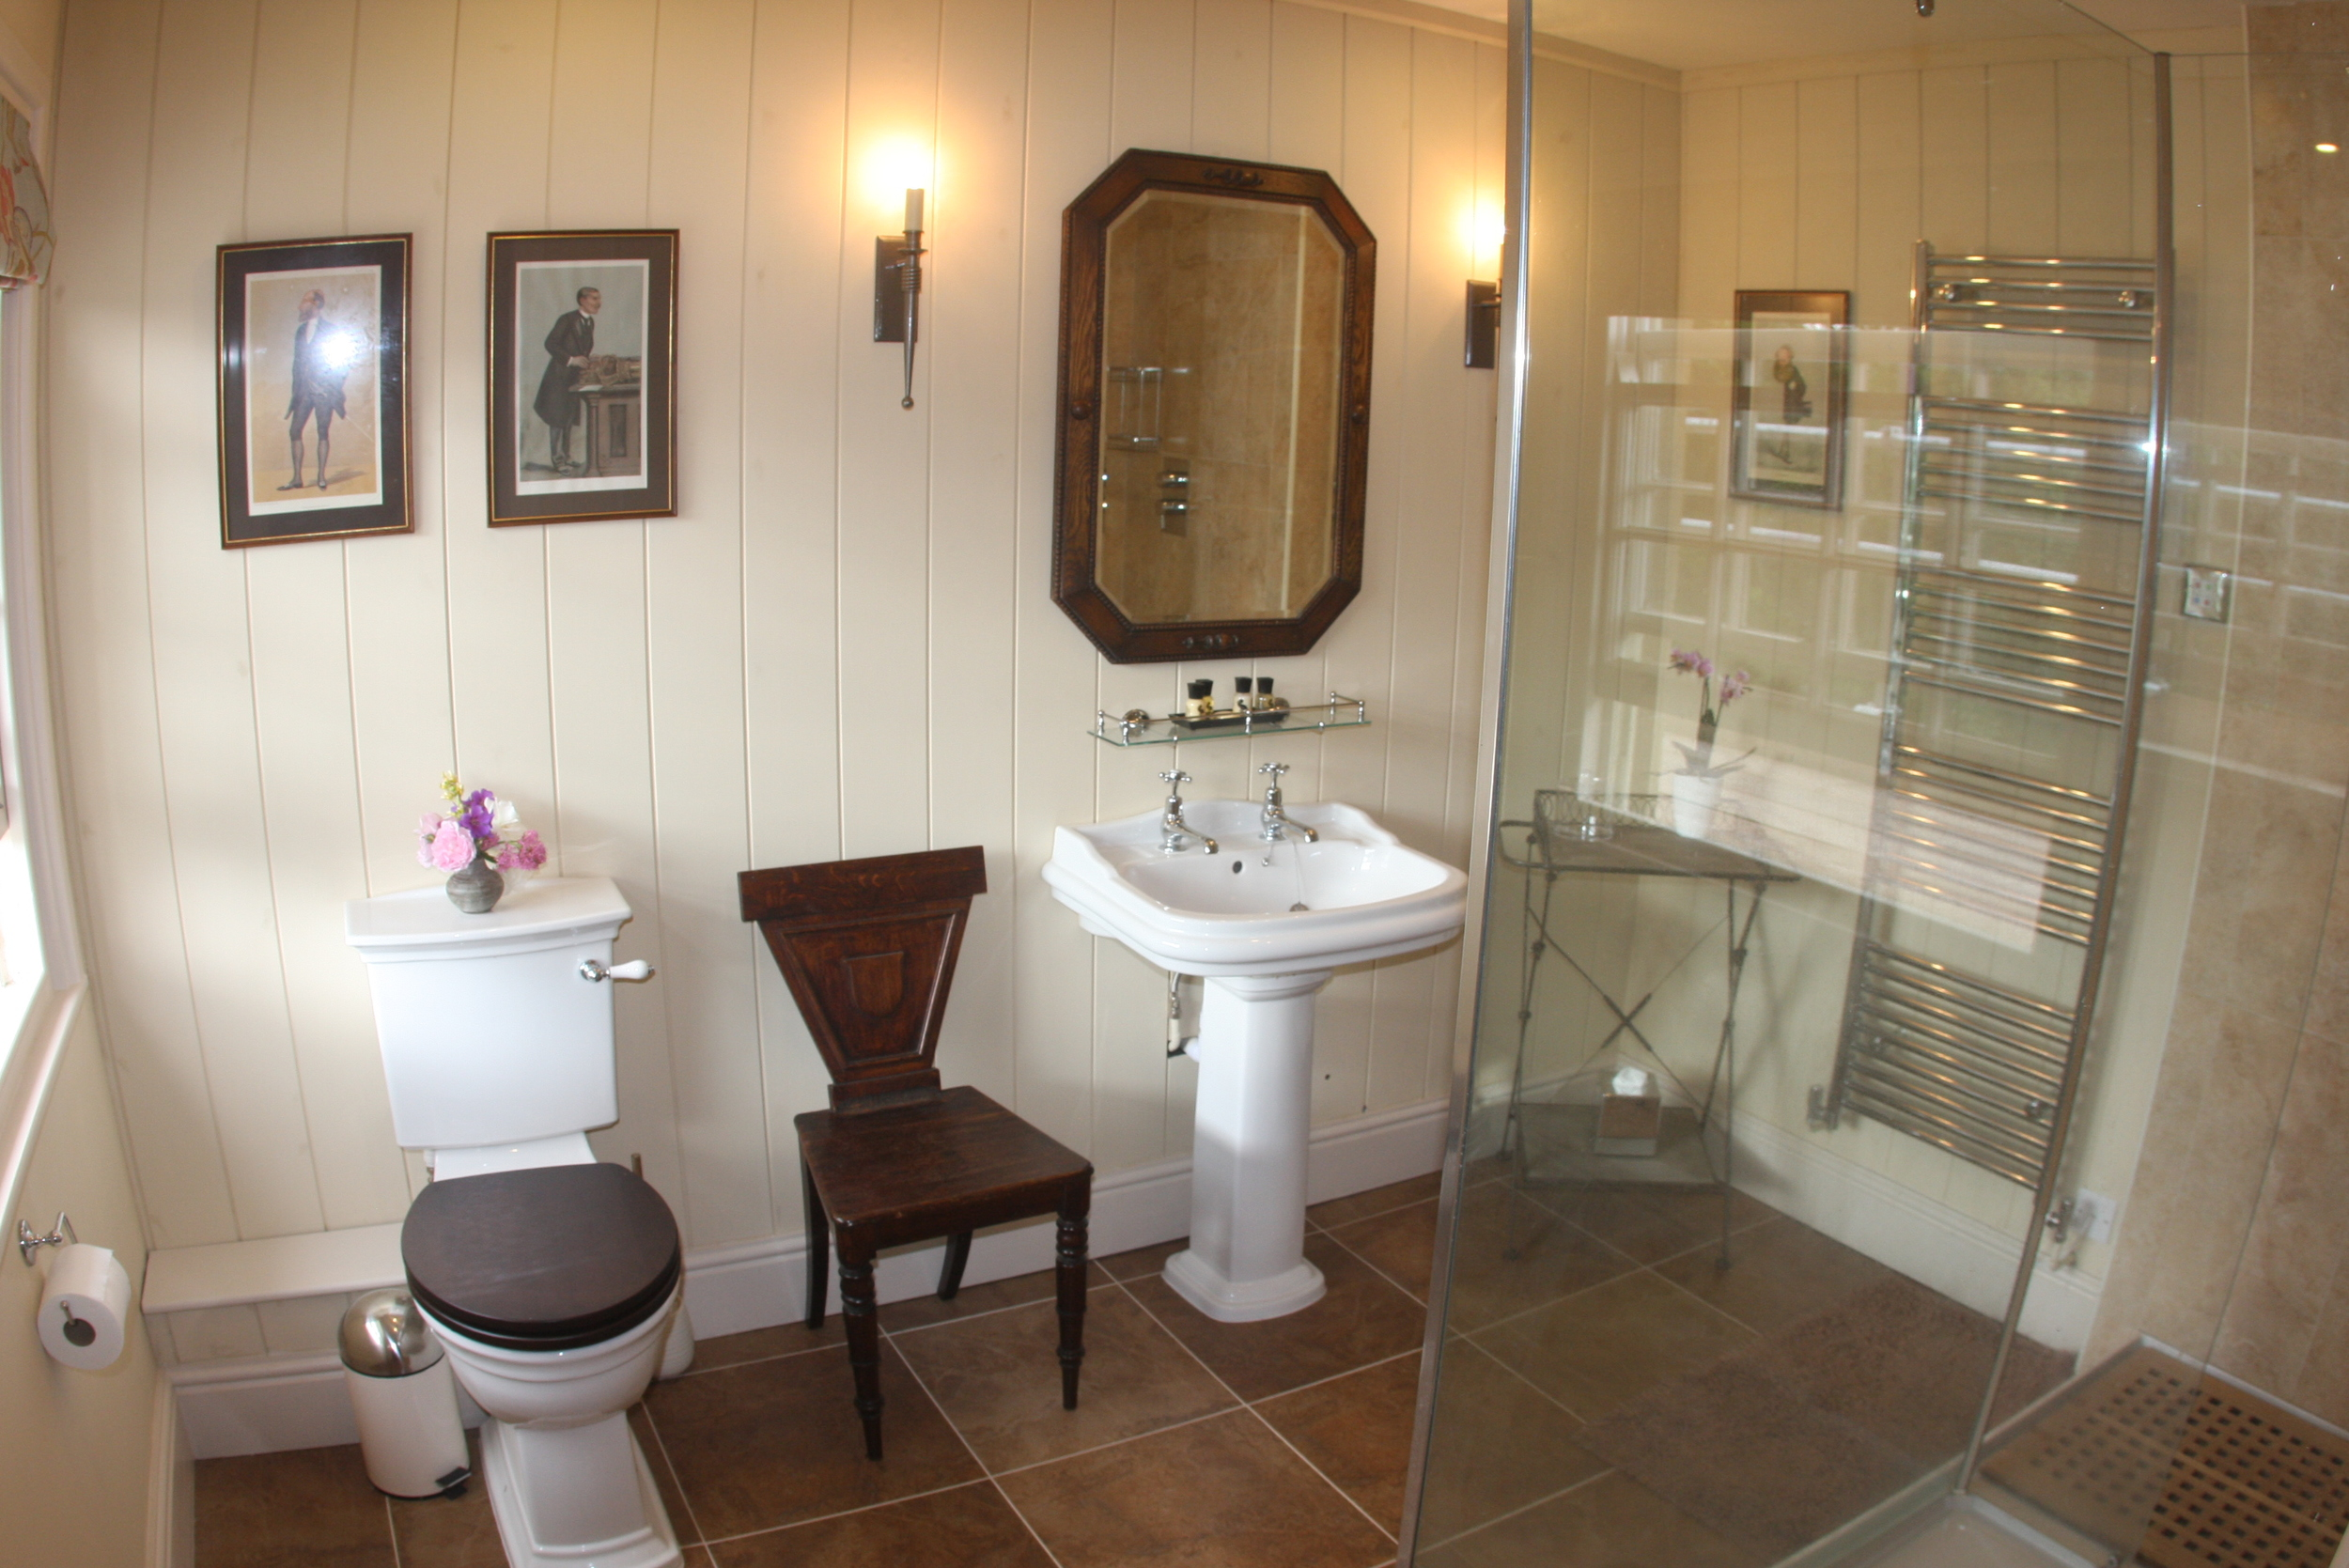 Bathroom West Moor 1.JPG